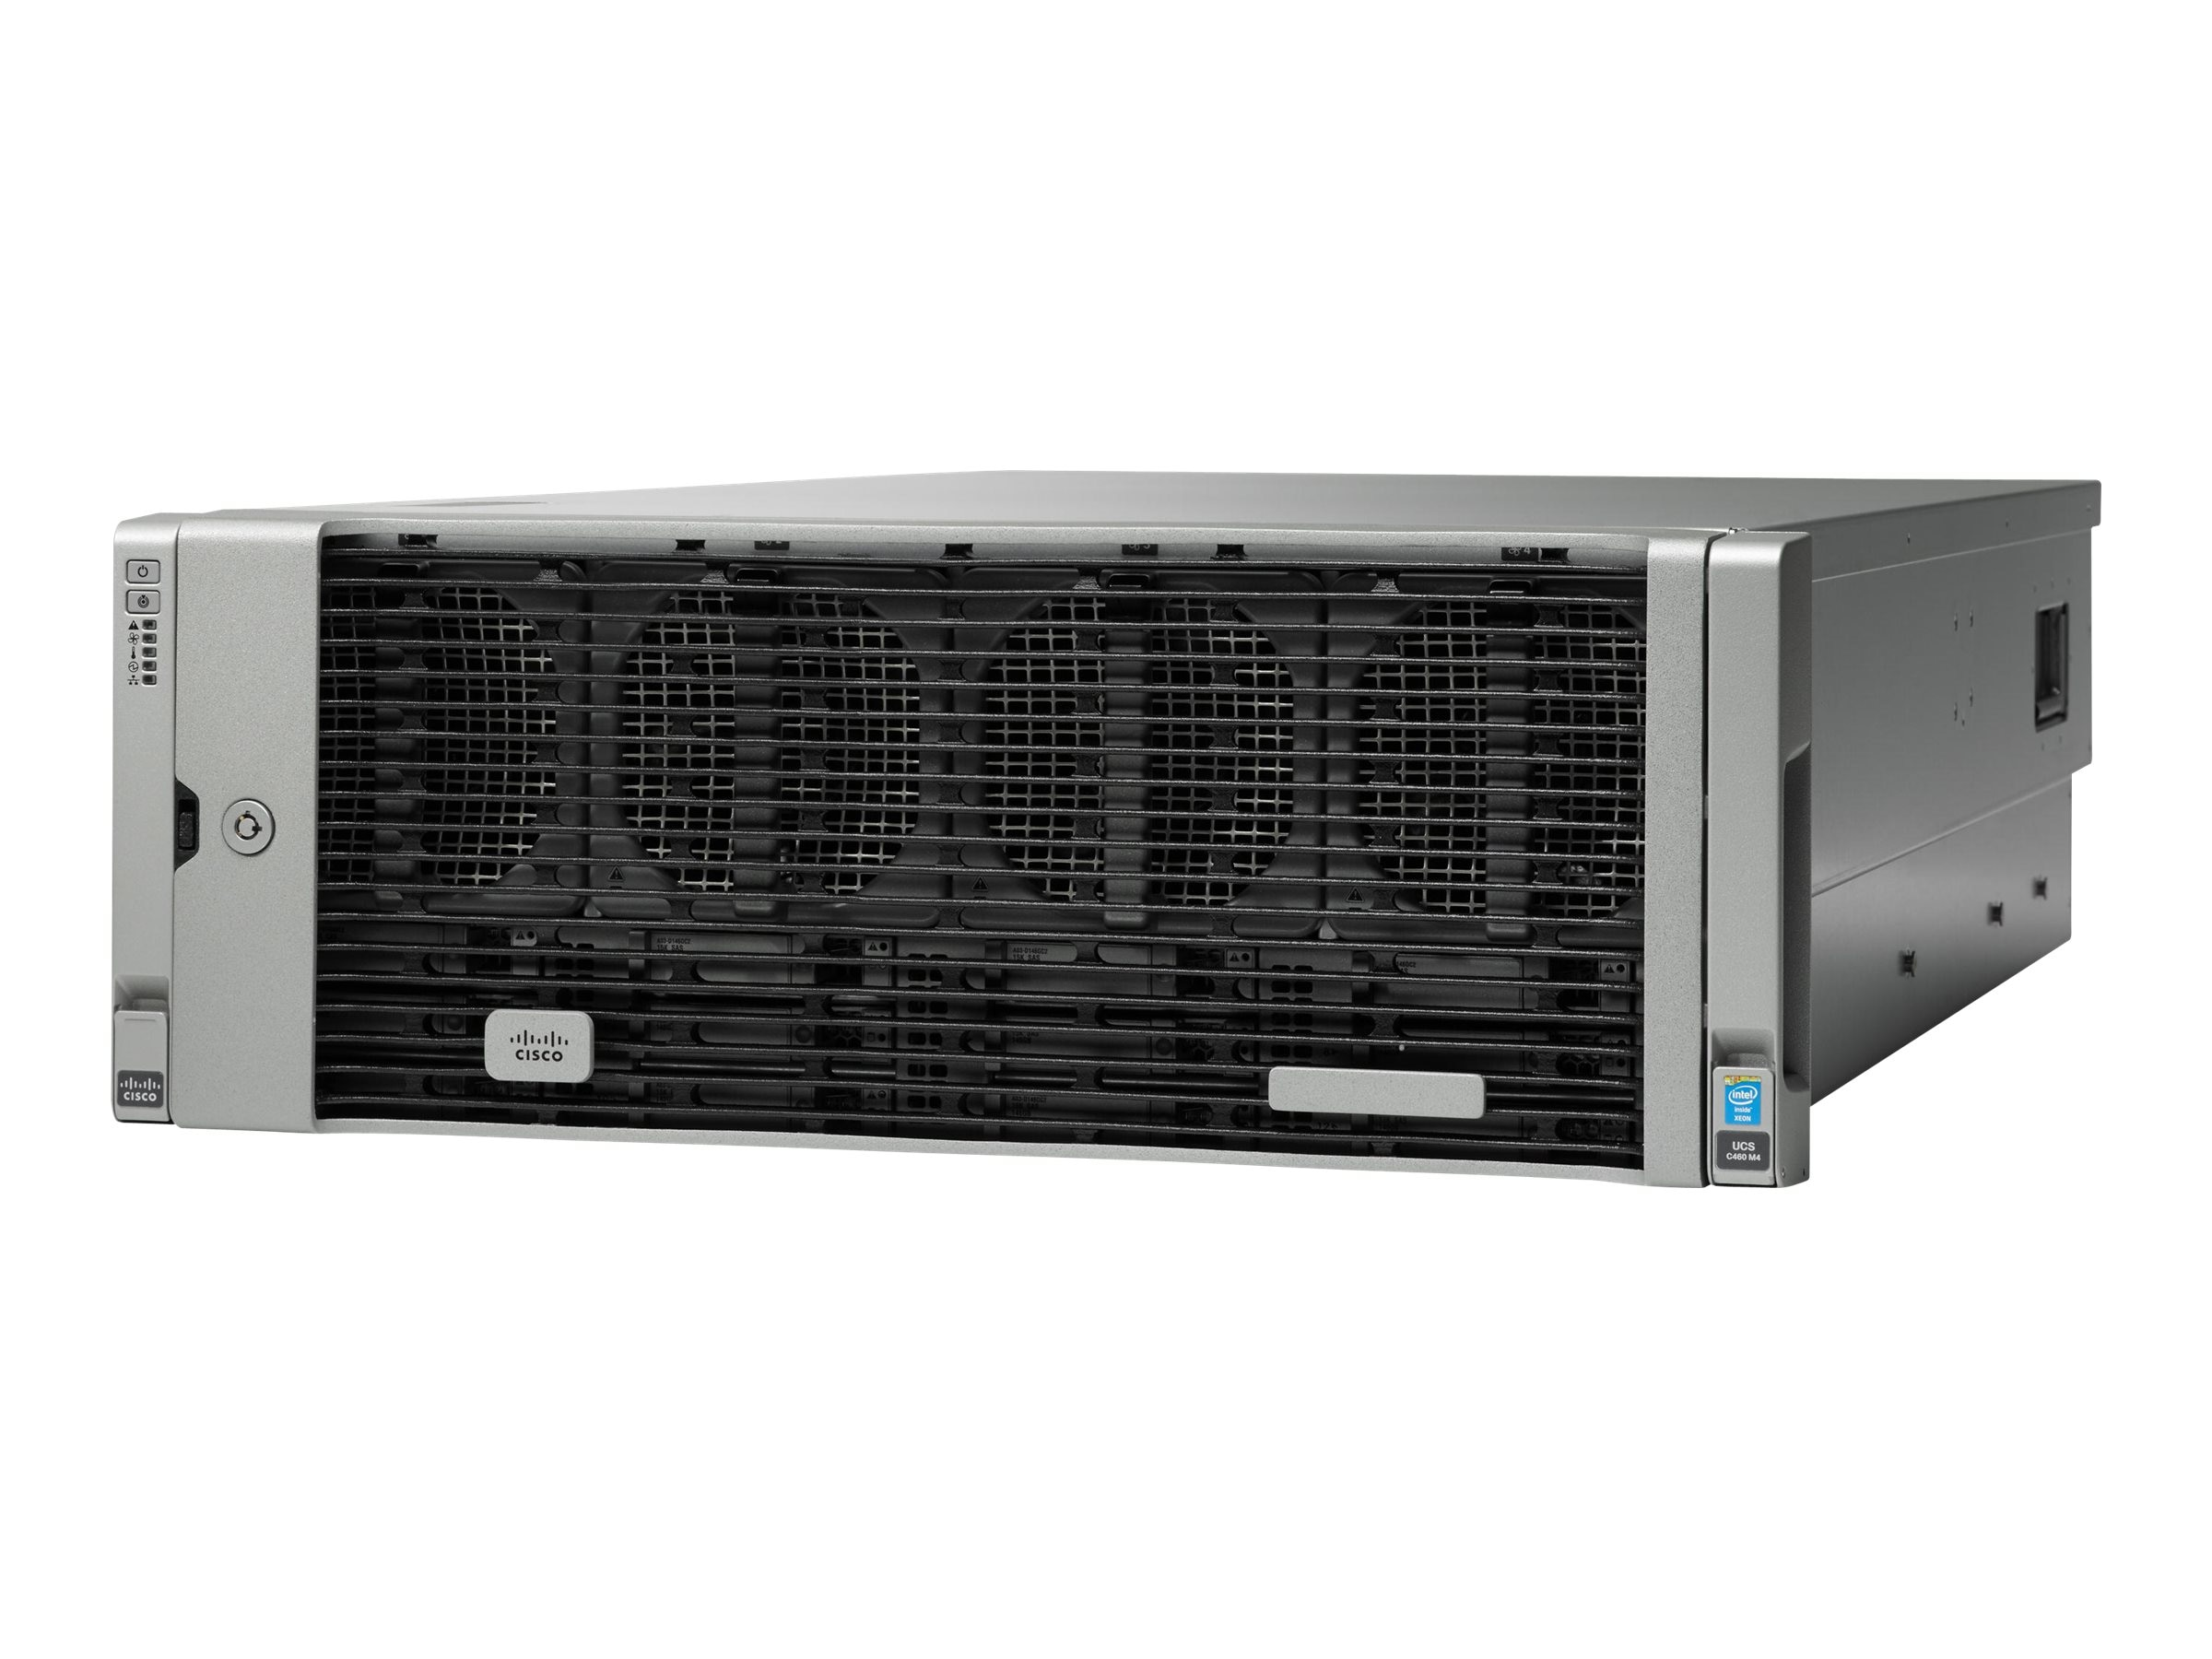 Cisco Barebones, UCS C460 M4 Base Chassis without CPU DIMM HDD, UCSC-C460-M4, 16940611, Barebones Systems